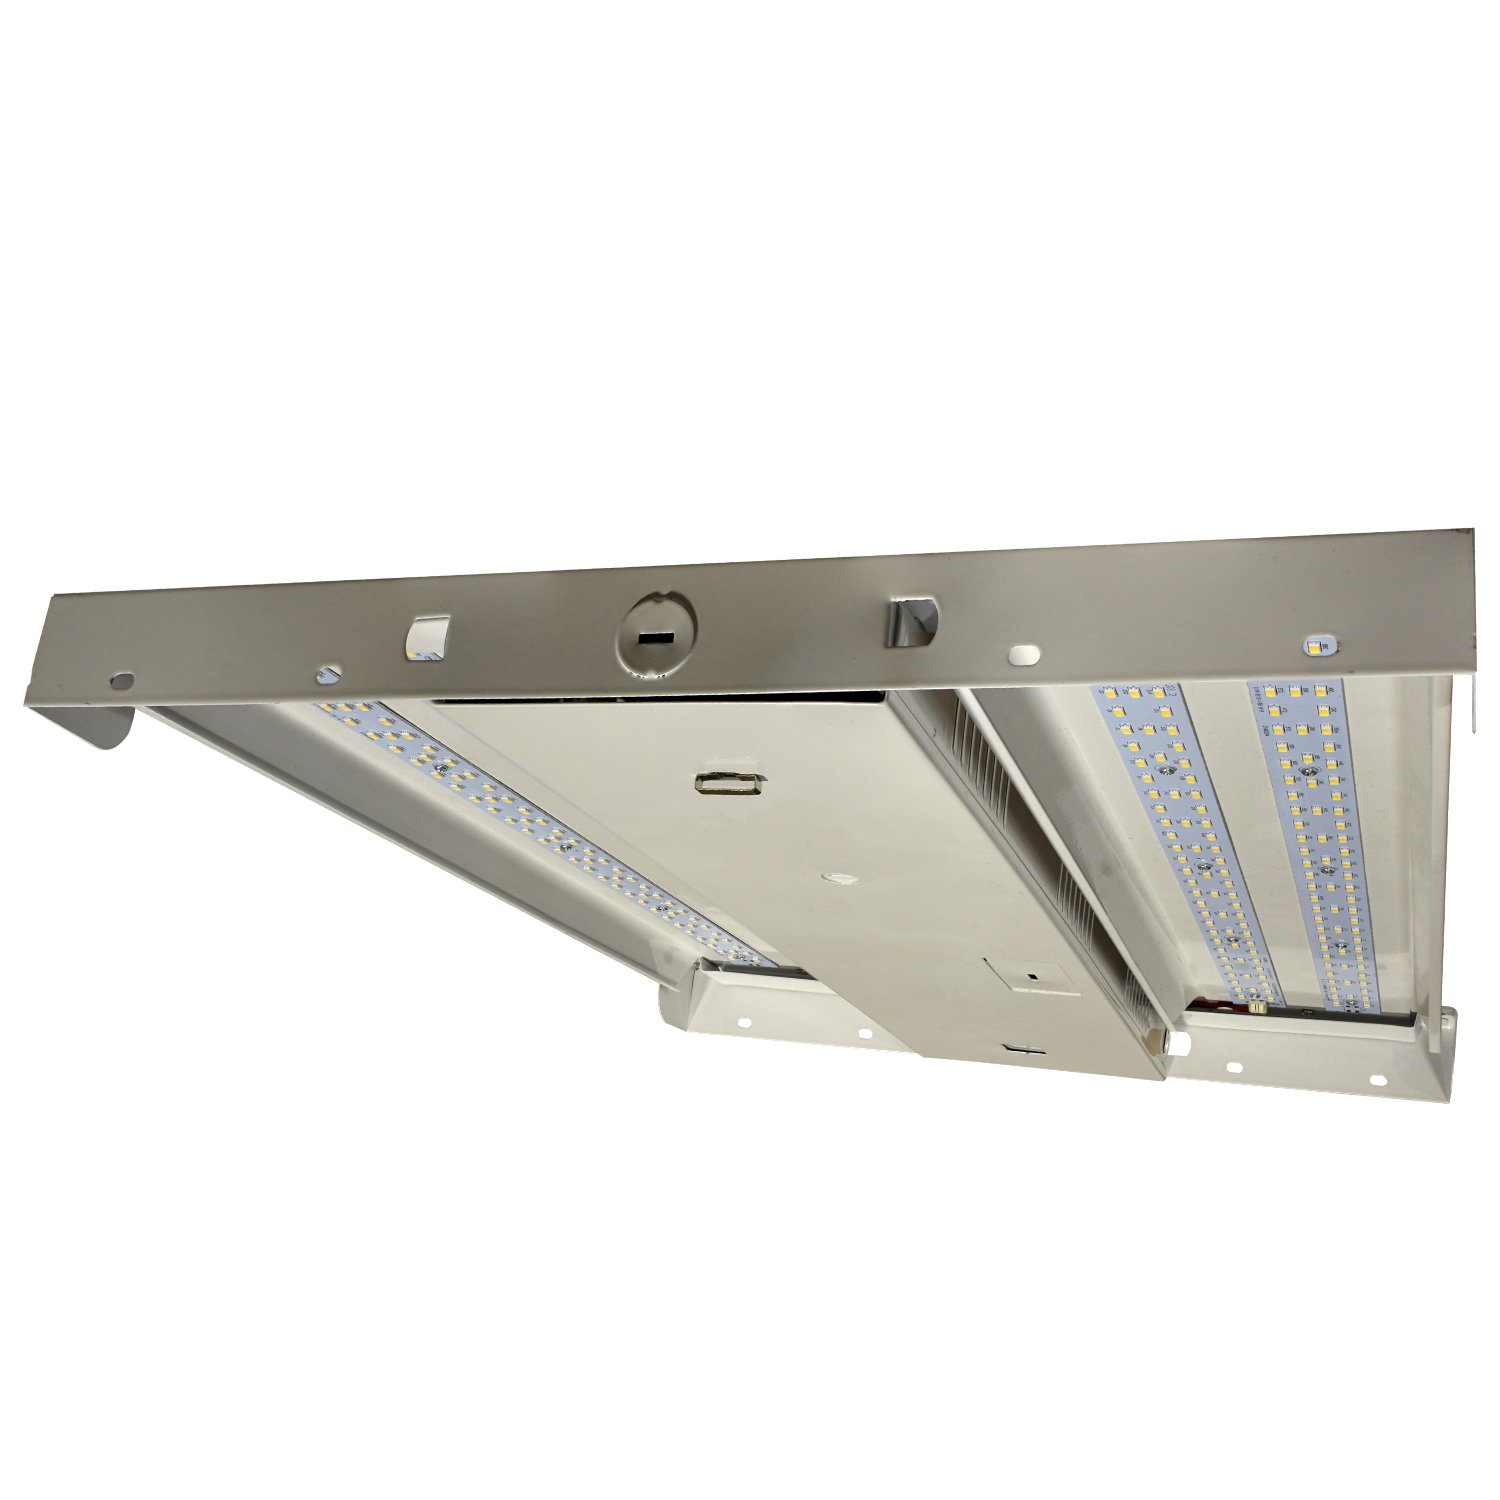 100 Watt LED I-Beam Dimmable High Bay Ceiling Light, 13,910 Lumens, Great for Warehouse and Shop - 4000 Kelvin 120-277 Volt 5 Yr Warranty DLC Premium Approved, cETLus Listed